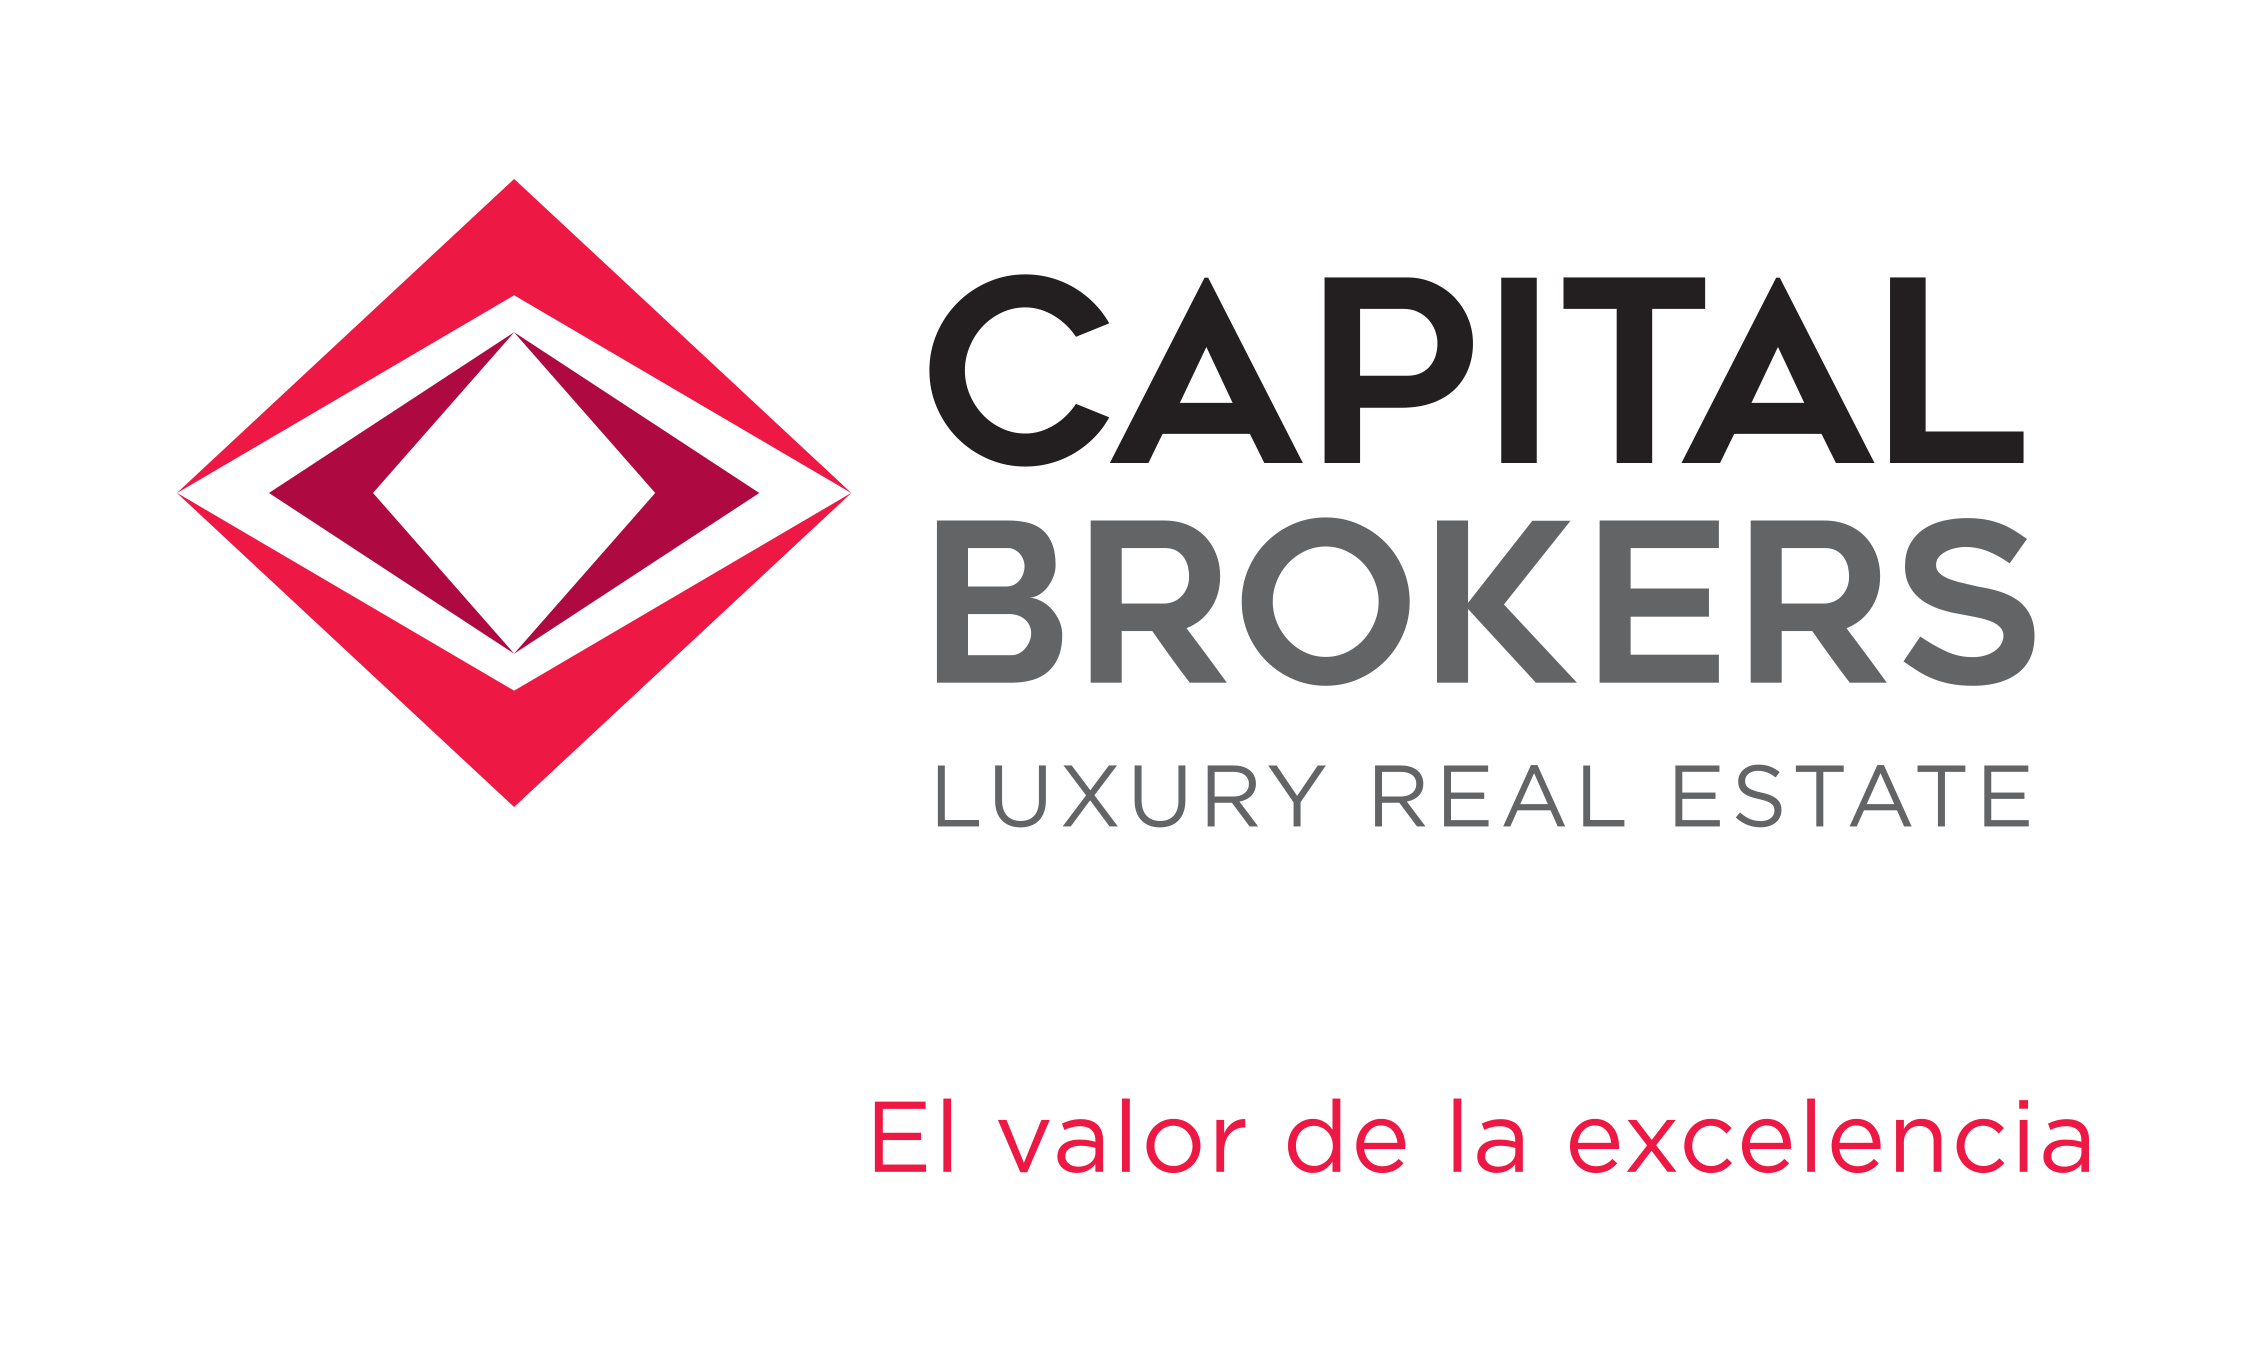 Logo_CapitalBrokers_color_fondo_transparente.png